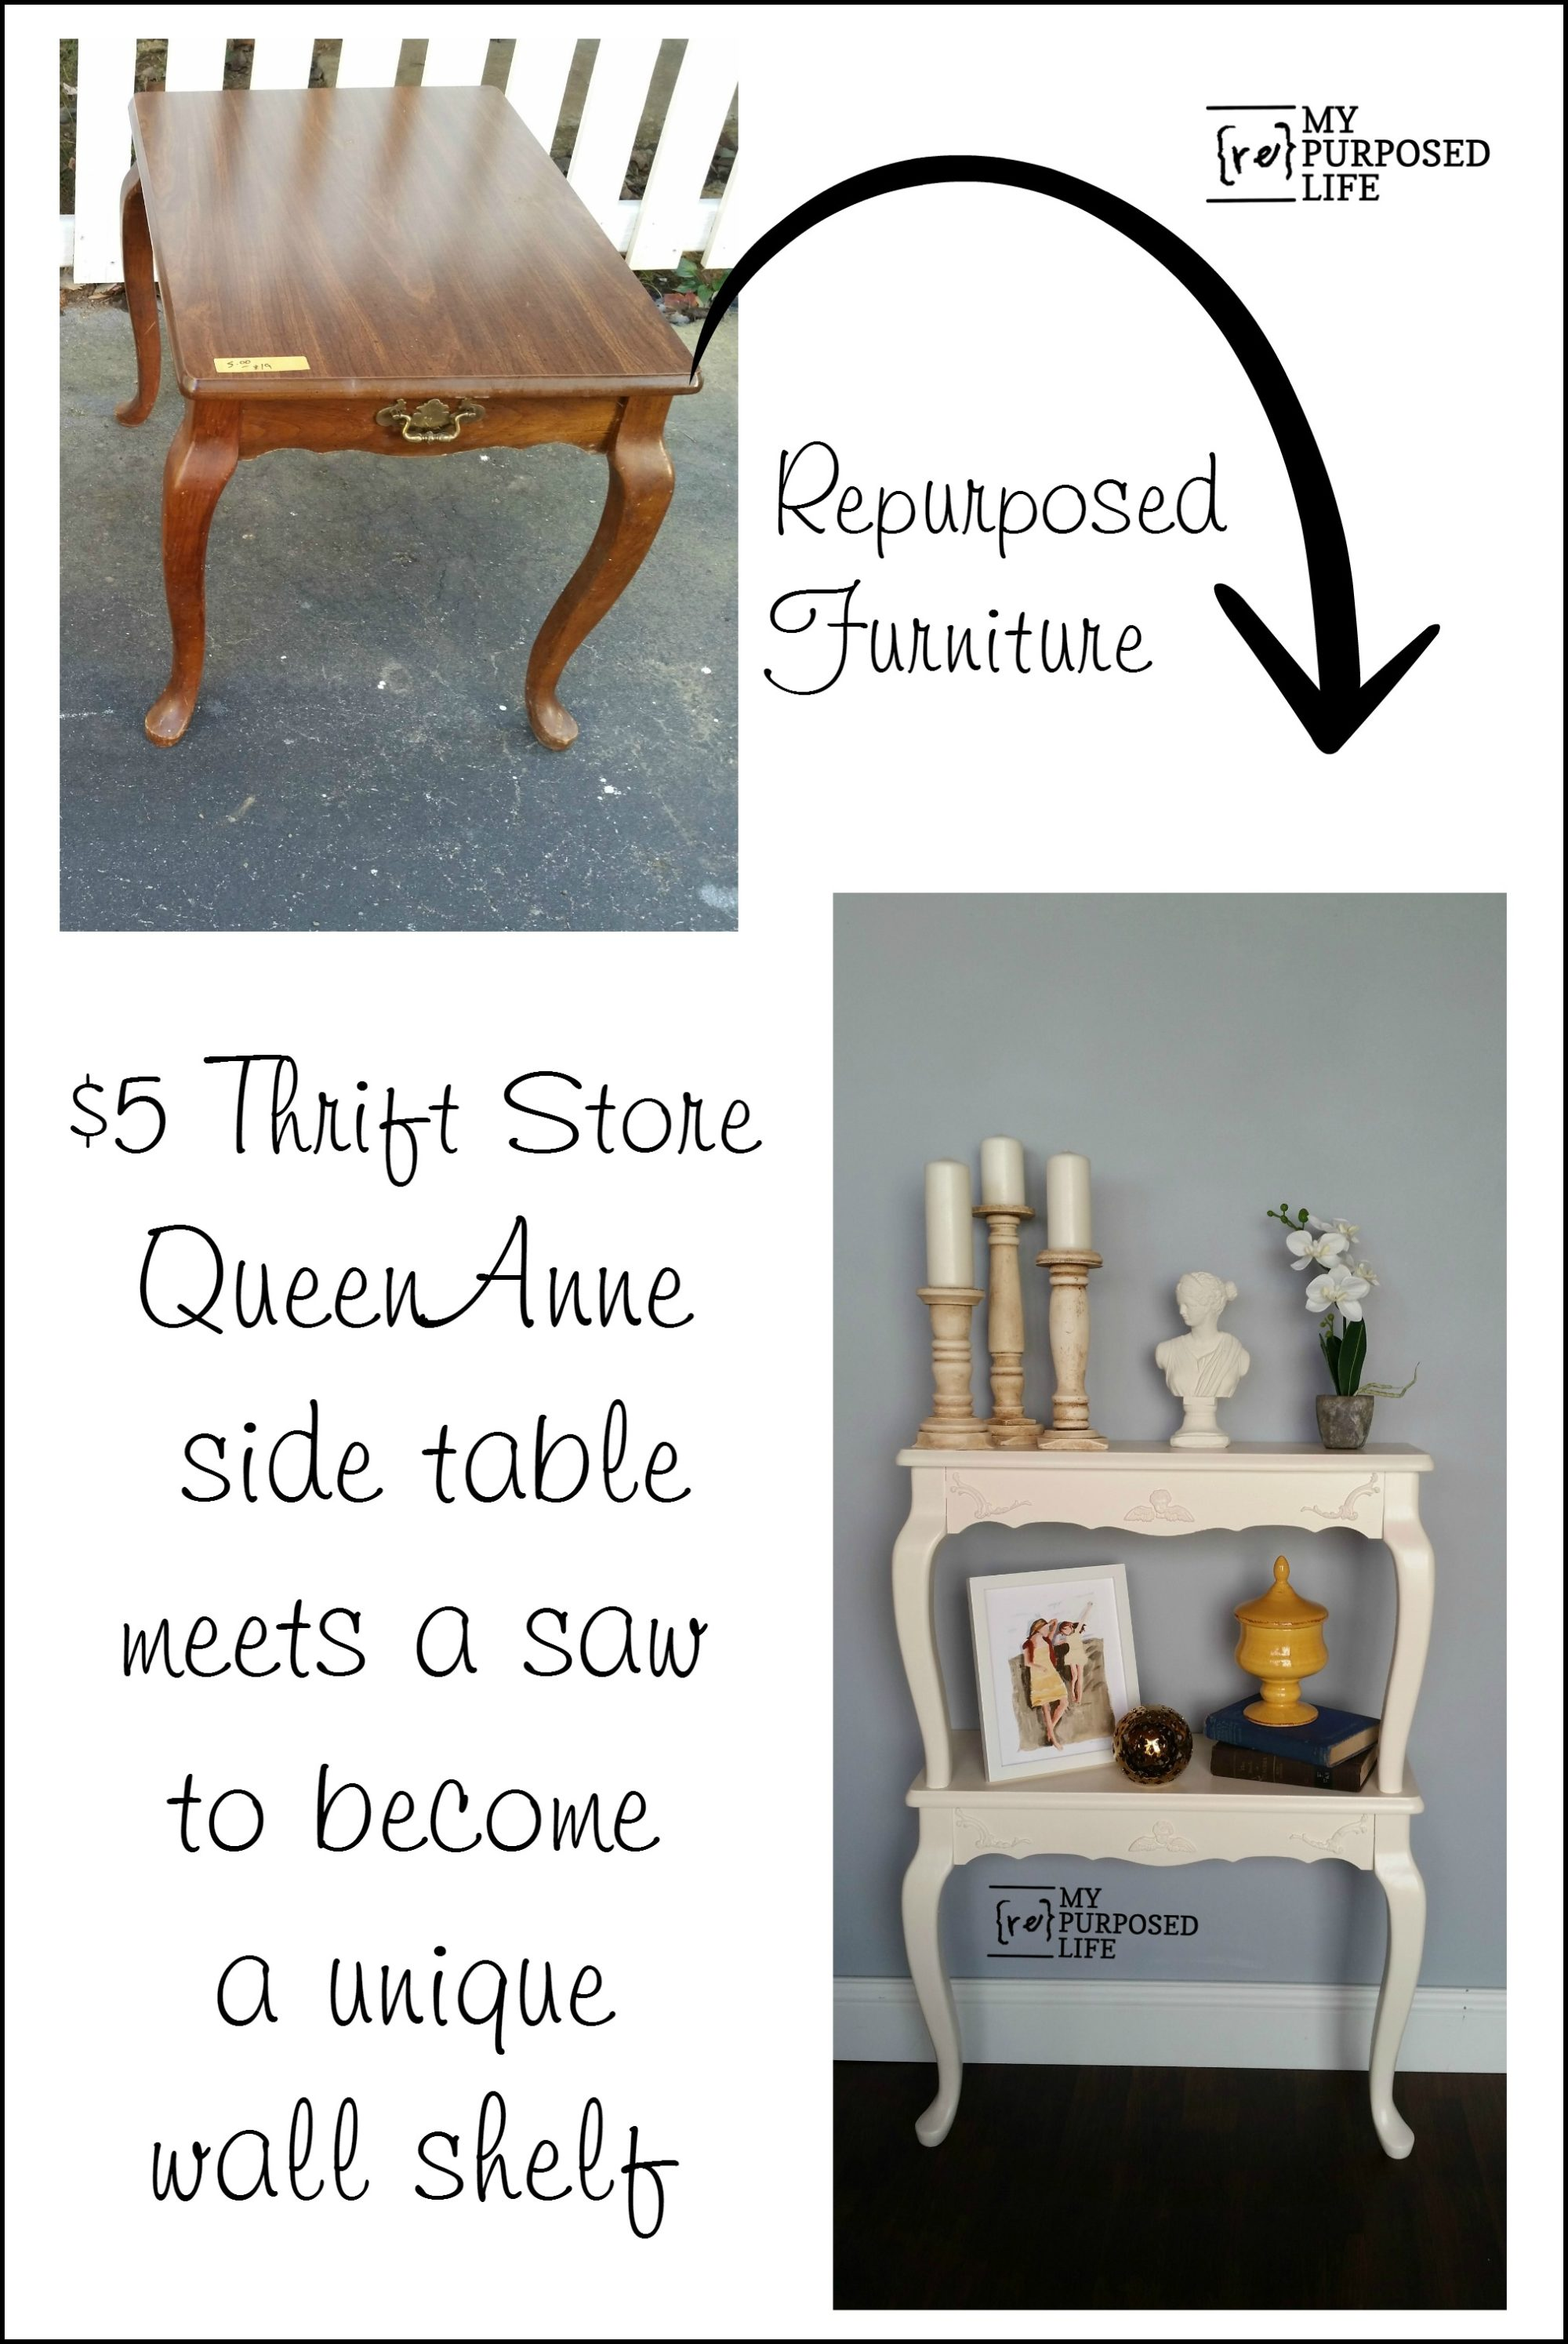 repurposed table ideas - My Repurposed Life®